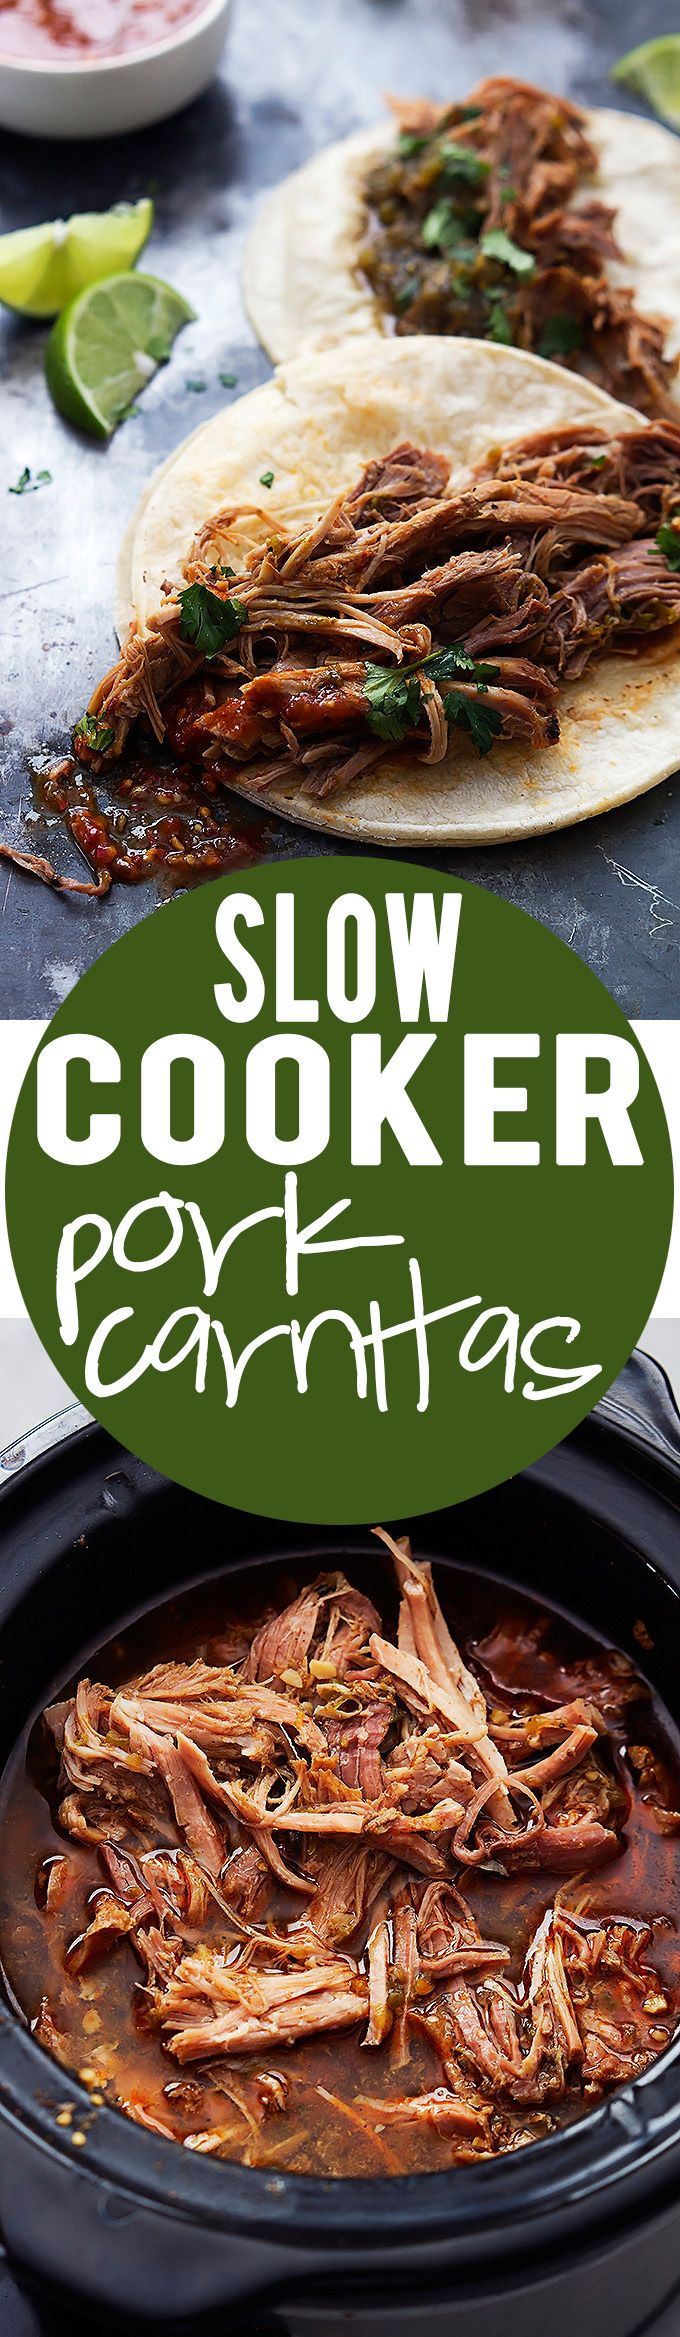 great for hot summer days, keeps the kitchen cool. Slow Cooker Pork Carnitas